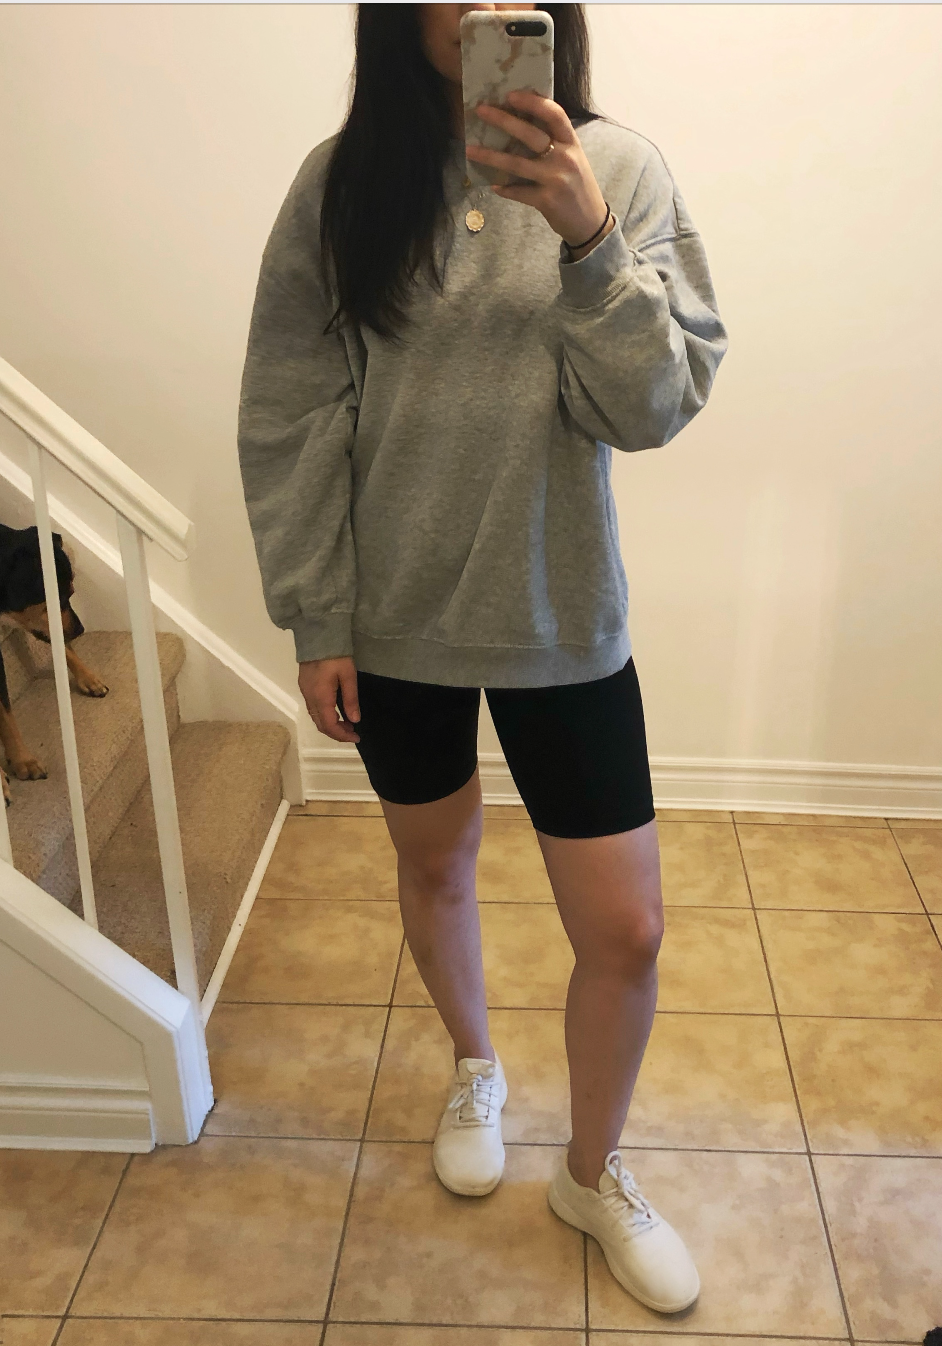 The Perform Bike Short in Black with an H&M oversized sweatshirt, Allbirds sneakers and Beagle/Rottweiler puppy.